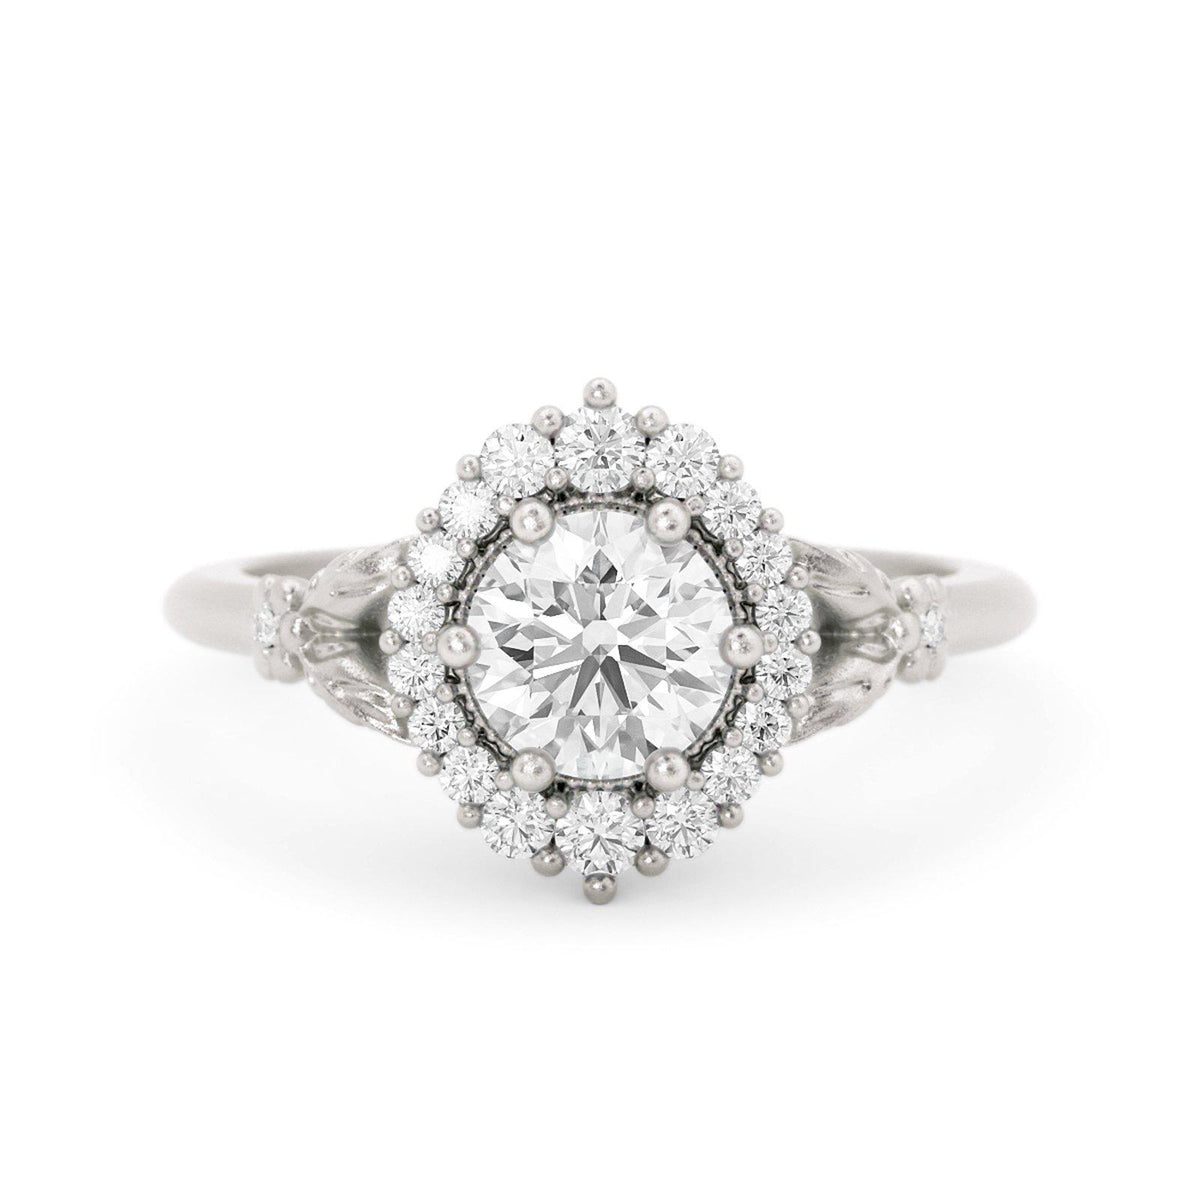 Orla Diamond Halo Engagement Ring White Gold Flowers